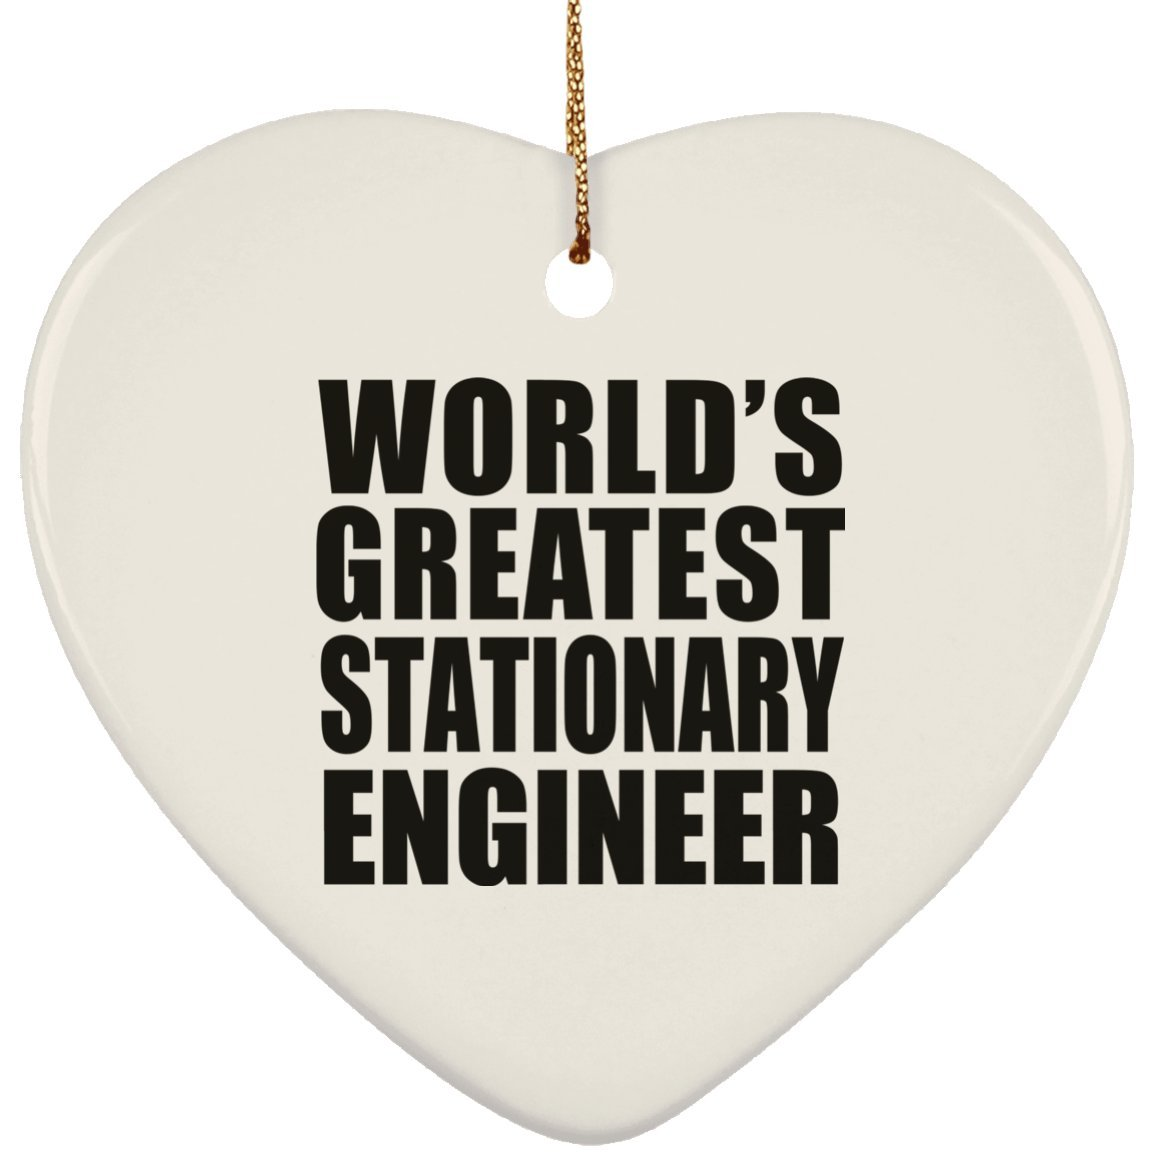 Designsify World's Greatest Stationary Engineer - Heart Ornament, Christmas Tree Decor, Best Gift for Birthday, Anniversary, Easter, Valentine's Mother's Father's Day